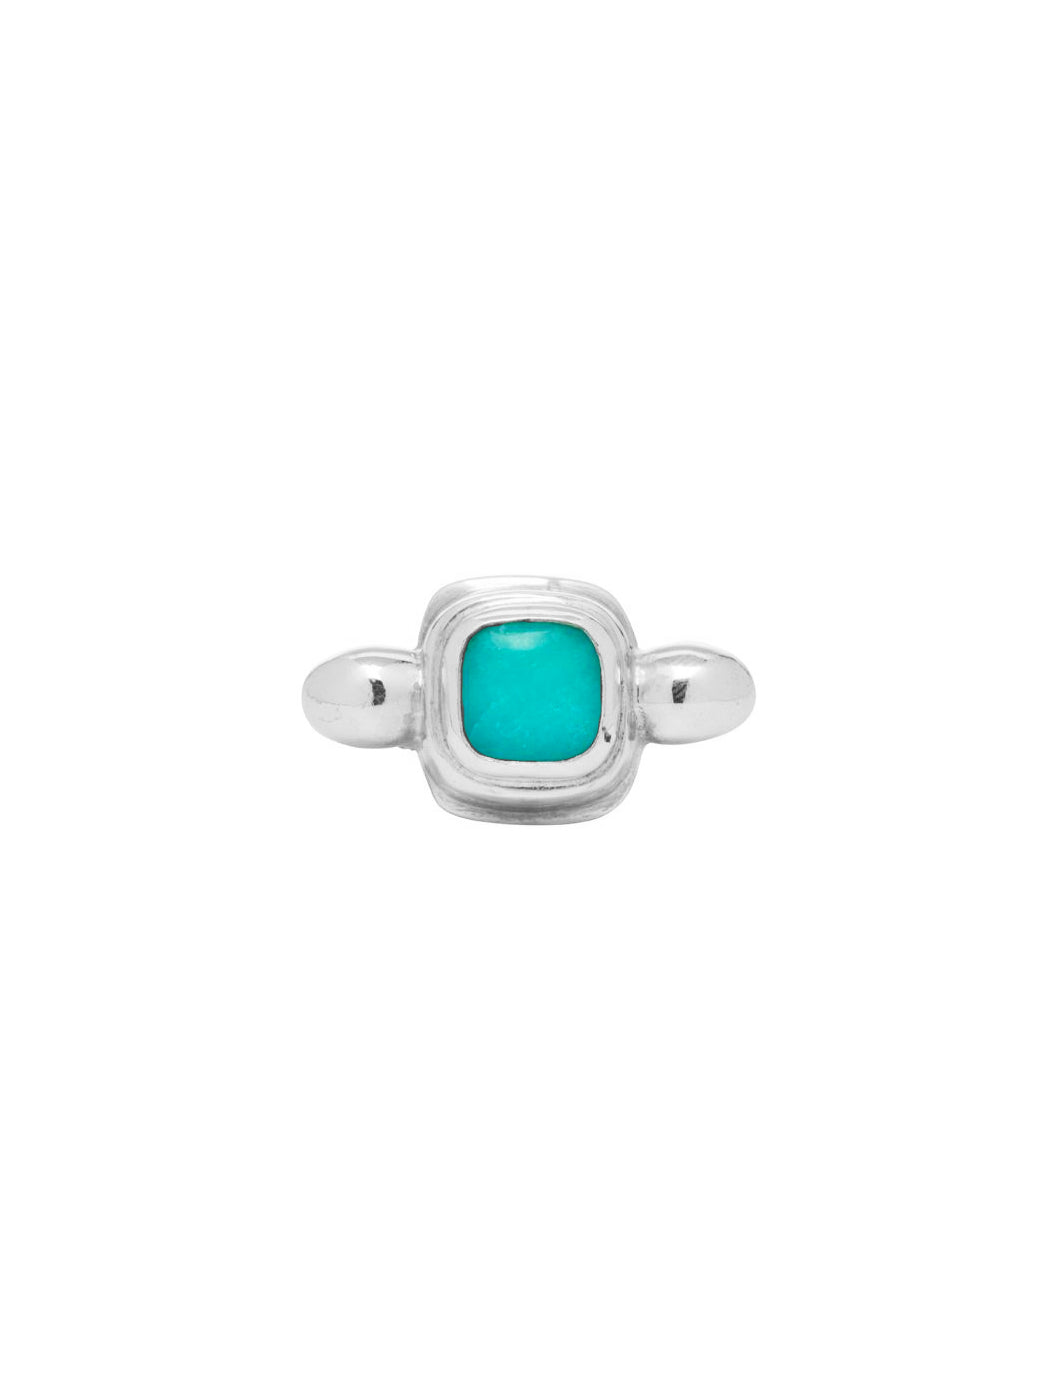 Fiorina Jewellery Chrysler Ring Amazonite